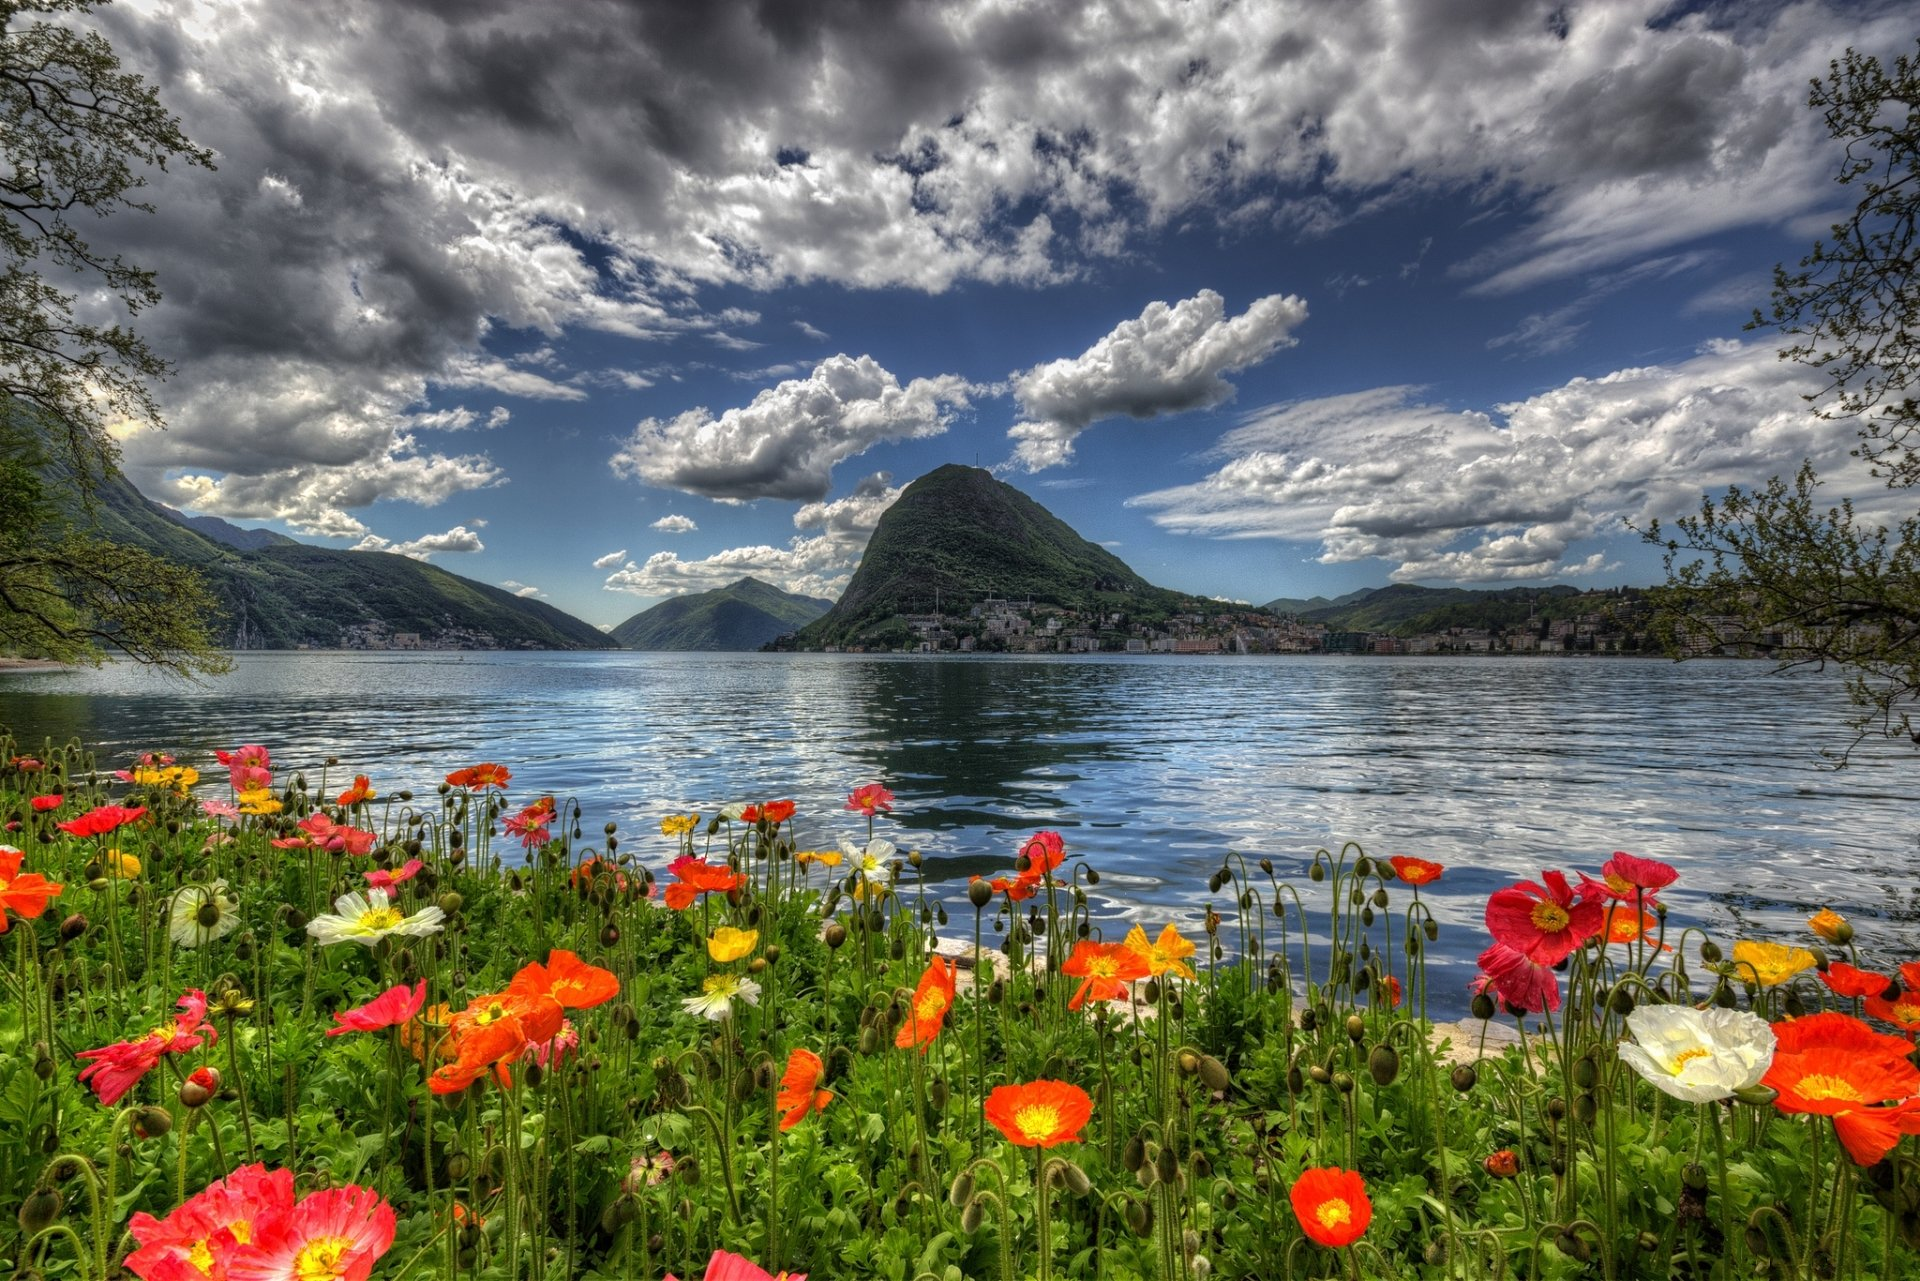 3d Flower Wallpapers For Iphone Flowers By Lake In Switzerland Full Hd Wallpaper And